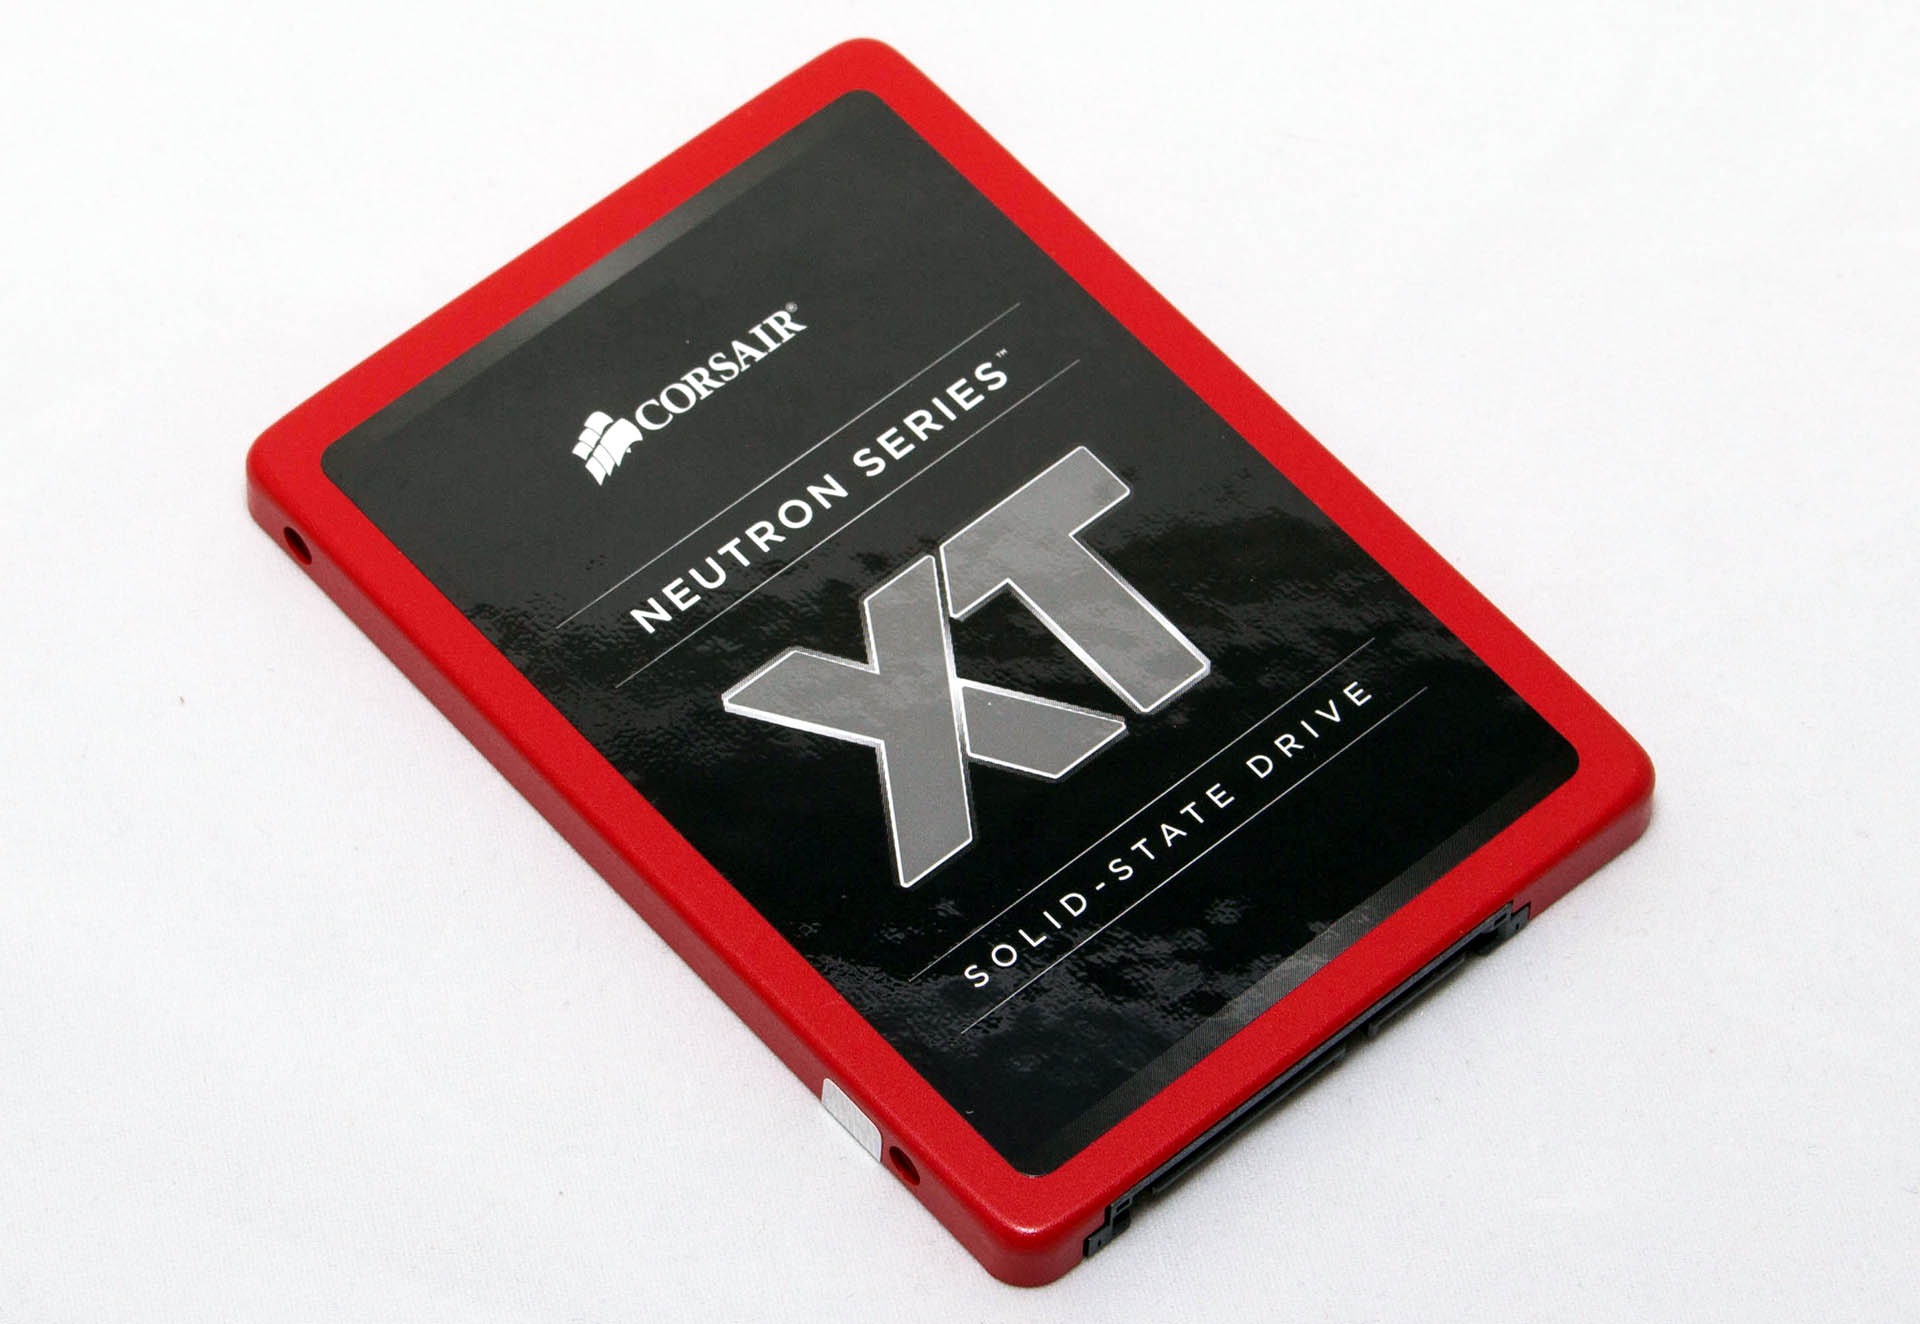 Corsair Neutron XT 480GB test